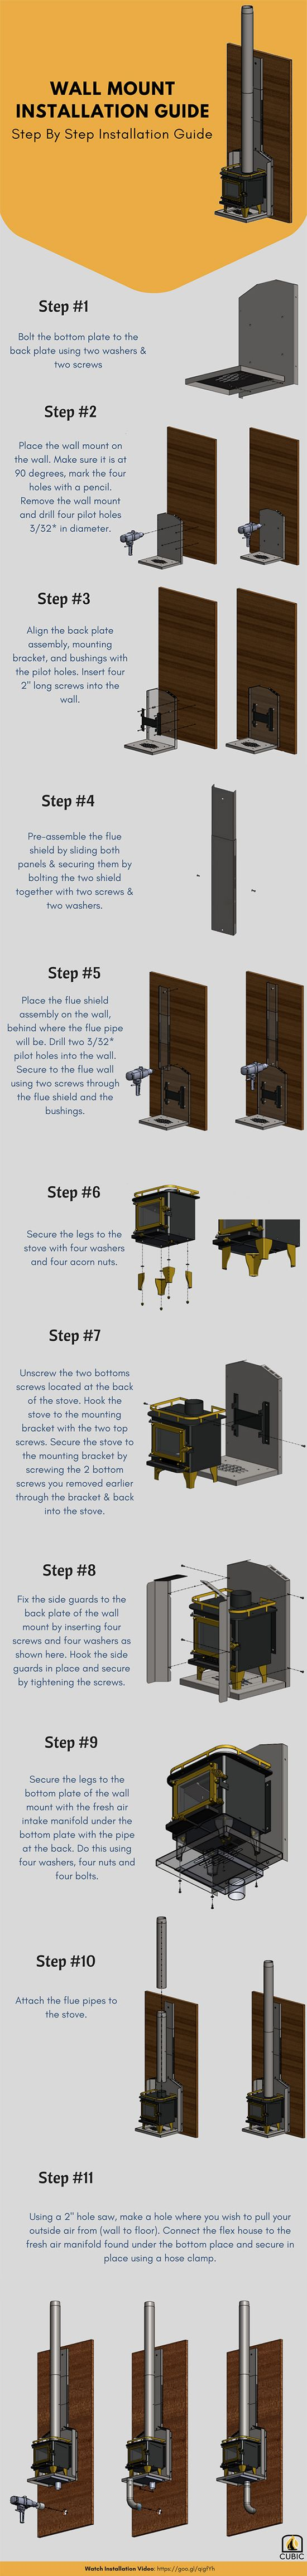 Cubic Mini Wood Stoves provide step by step wall mount installation instructions guide for all of you to easily install the cub and grizzly stoves.